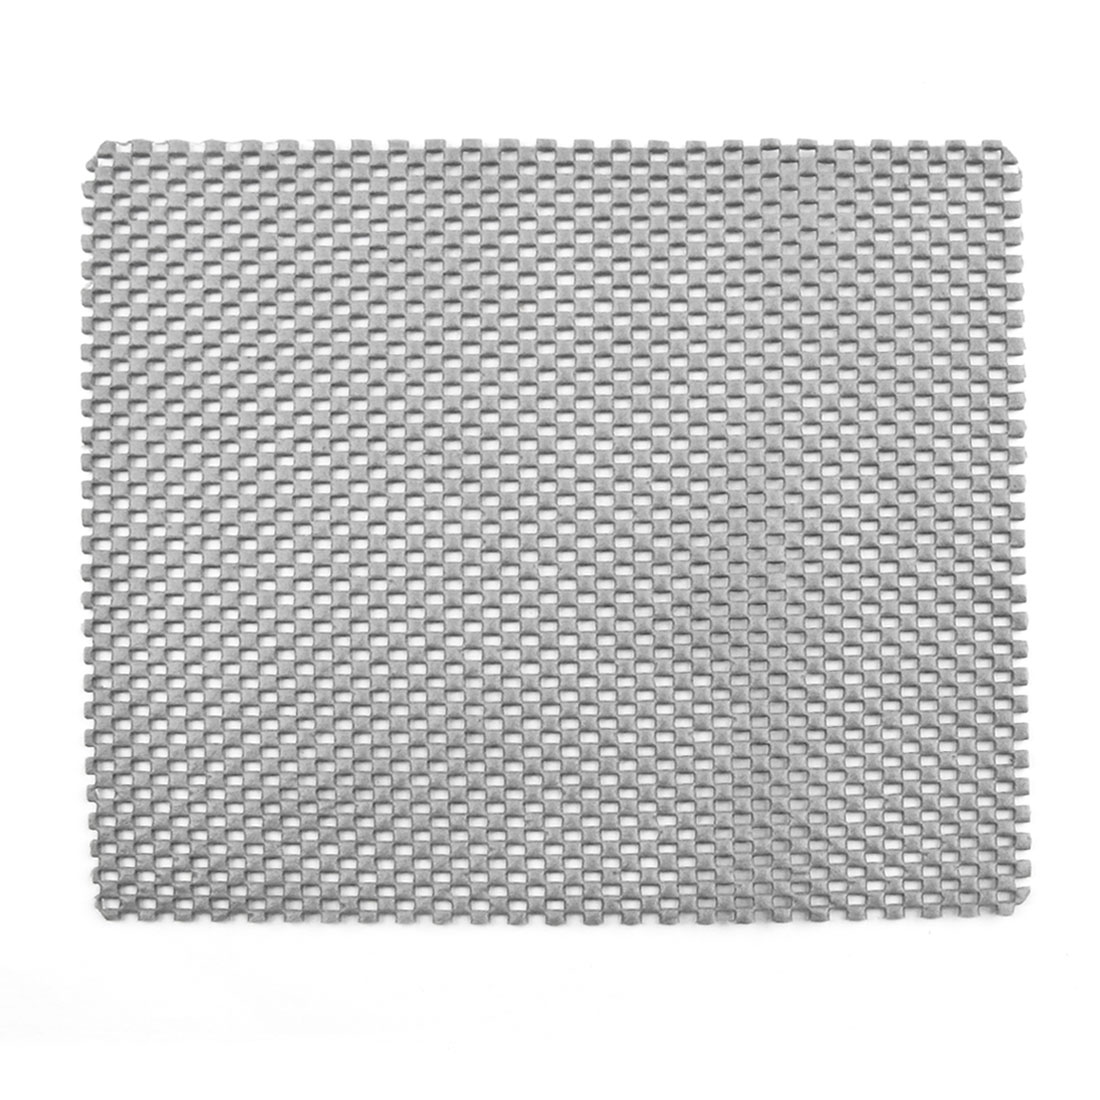 Car Dashboard Grid Anti Slip Mat Pad Holder Gray for Cell Phone Glasses